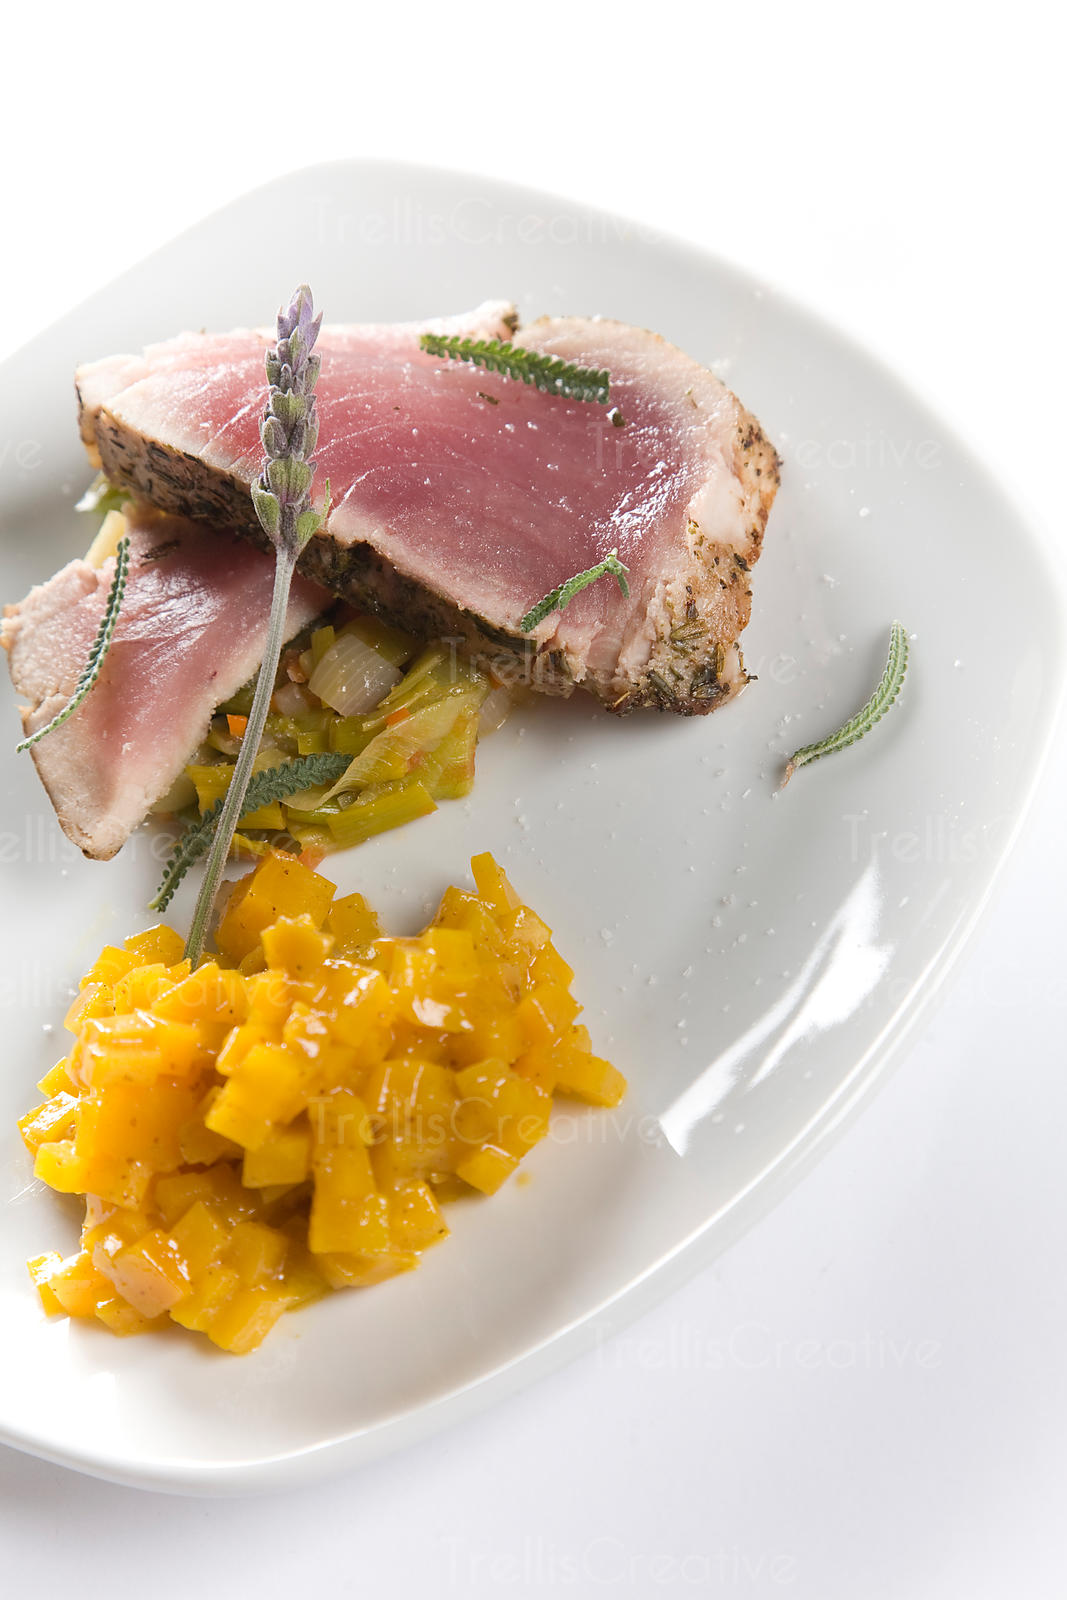 Rare tuna steak served with roasted golden yellow beets